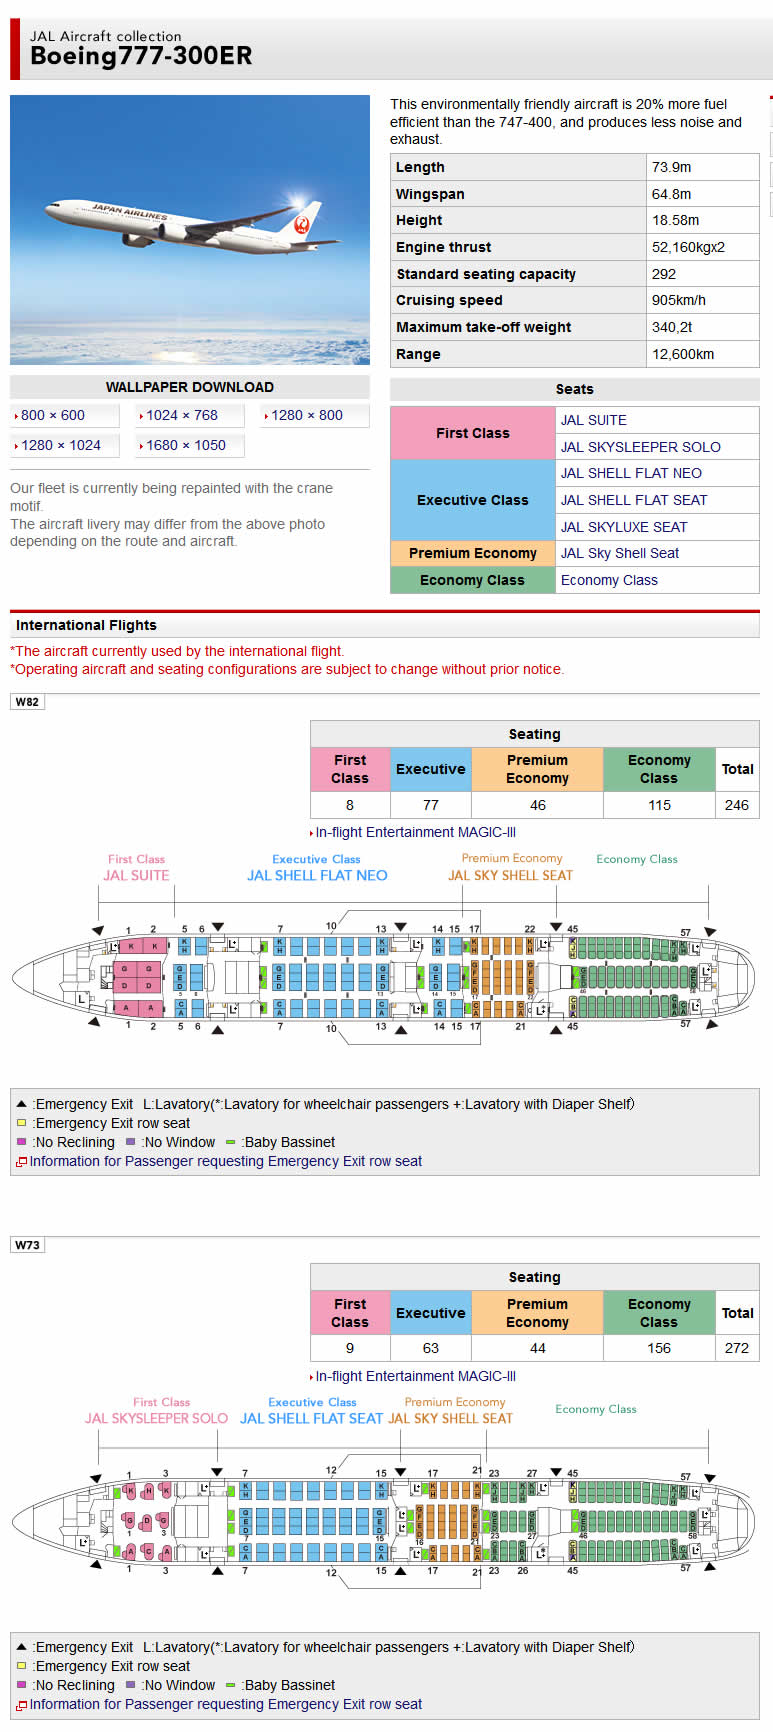 JAL JAPAN AIR AIRLINES BOEING 777-300ER AIRCRAFT SEATING CHART